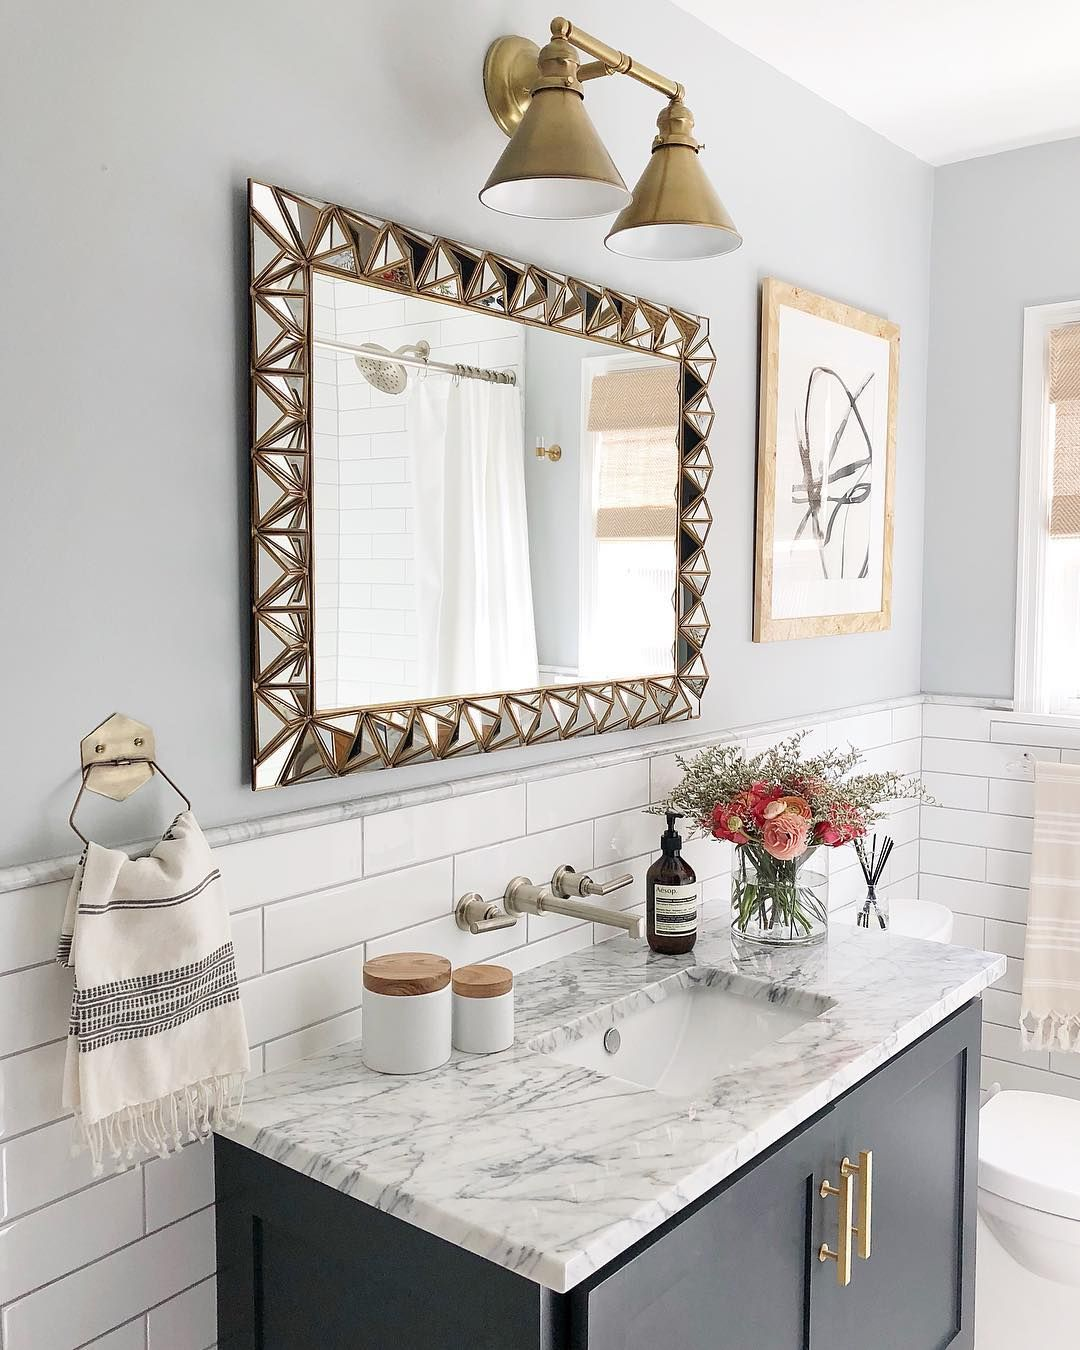 Wall color is Sherwin Williams Gray Screen paintcolor